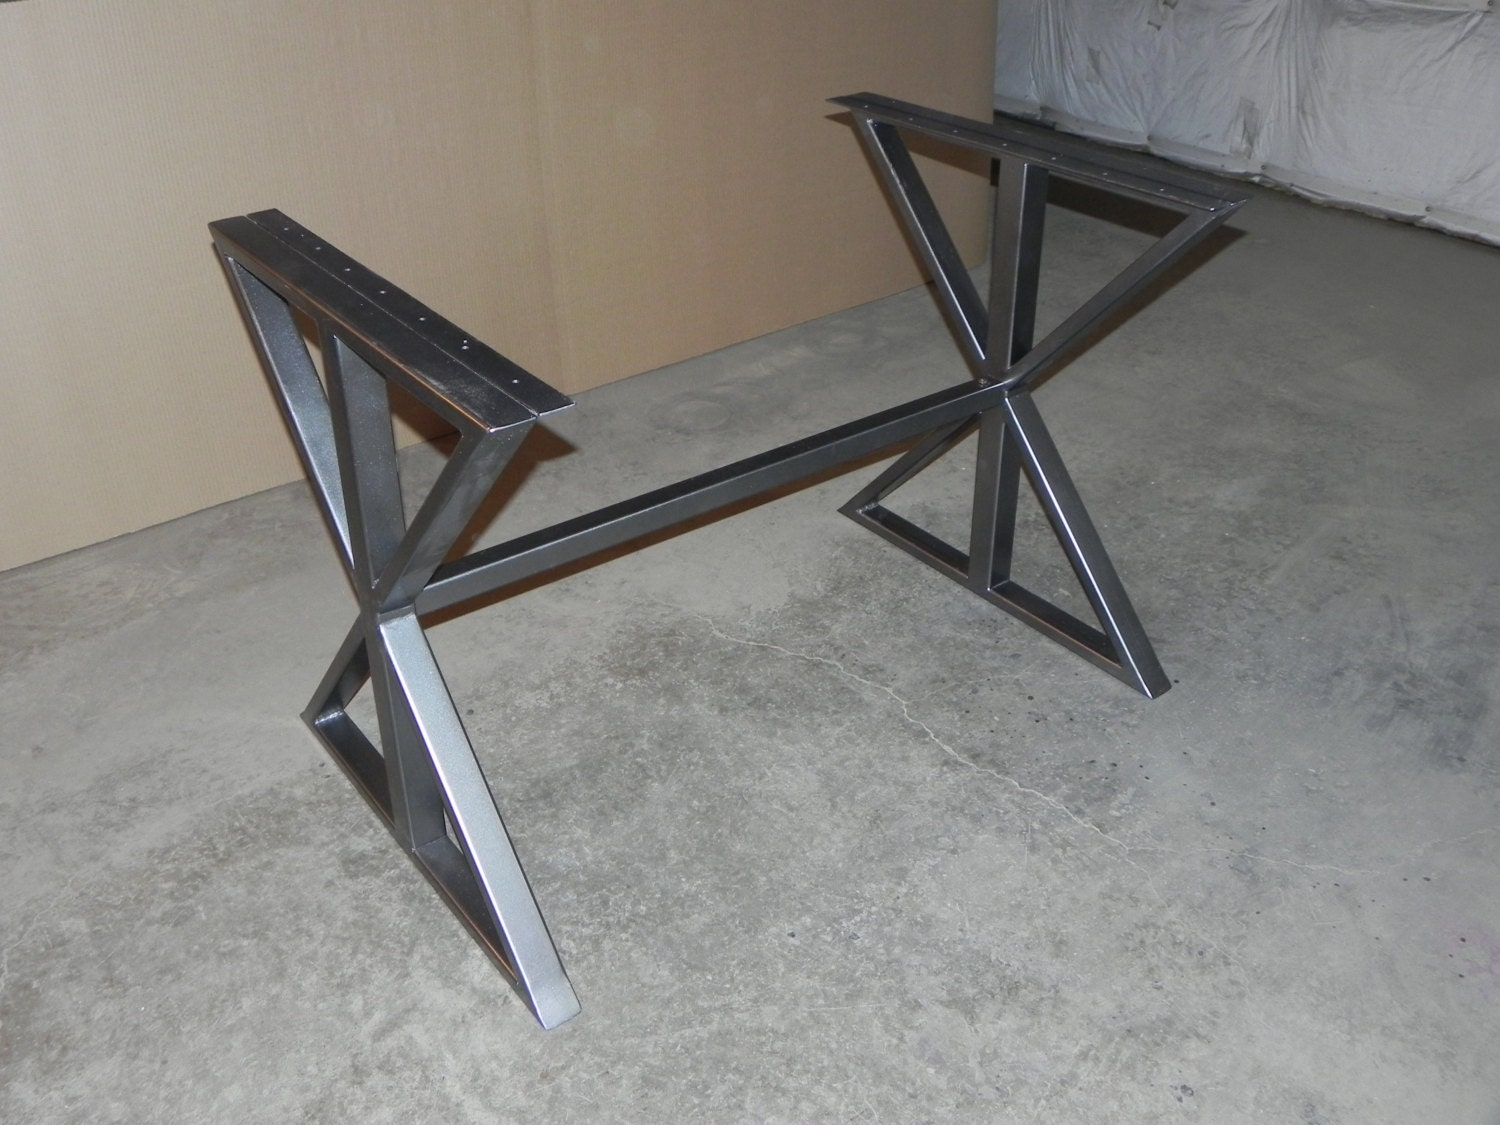 Modern steel farmhouse DIY table base by FunkyLivingCA on Etsy